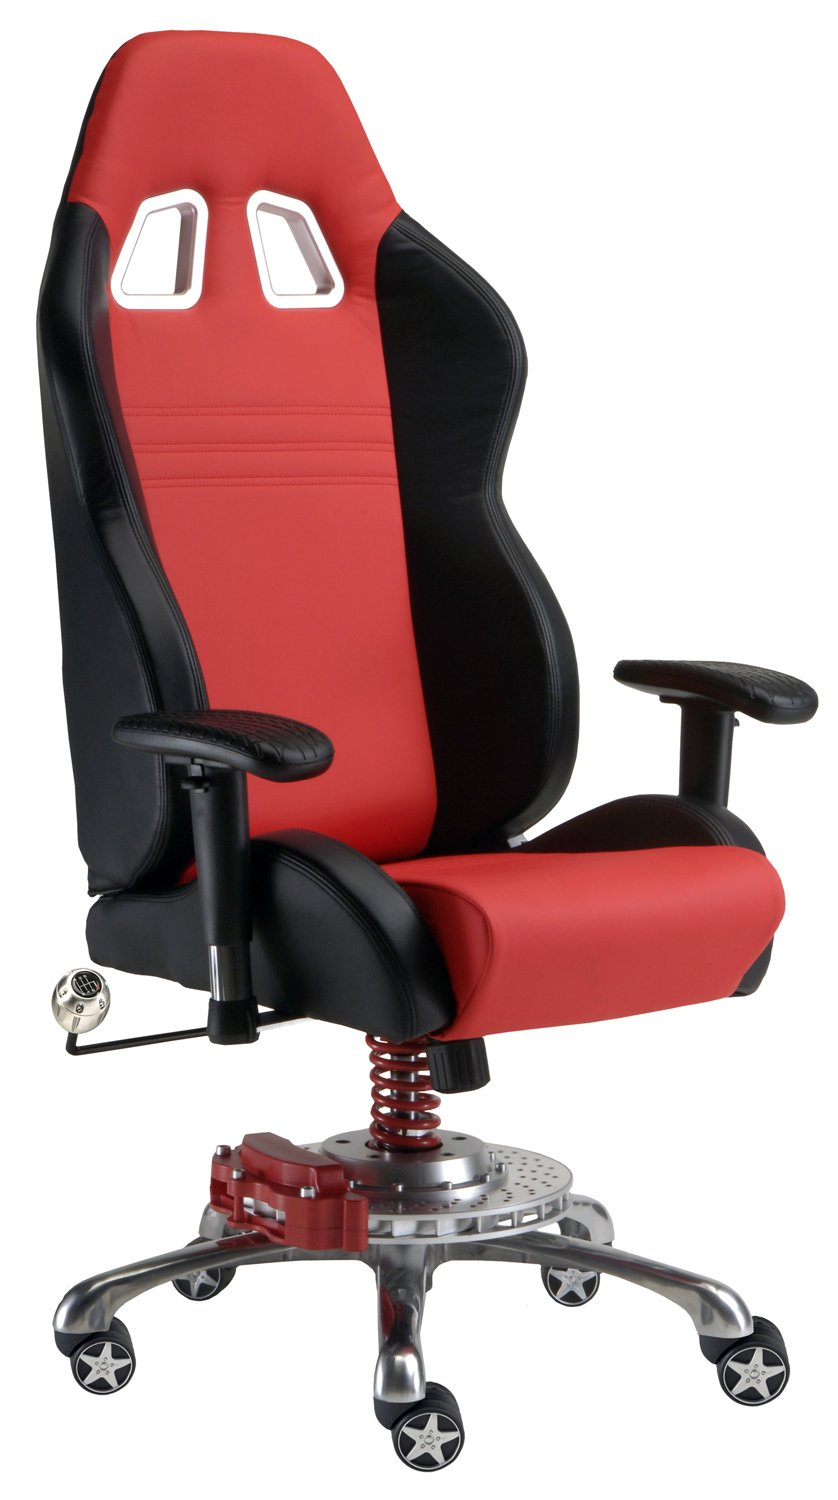 Amazoncom Pitstop Furniture GP1000R Red GT Office Chair Automotive